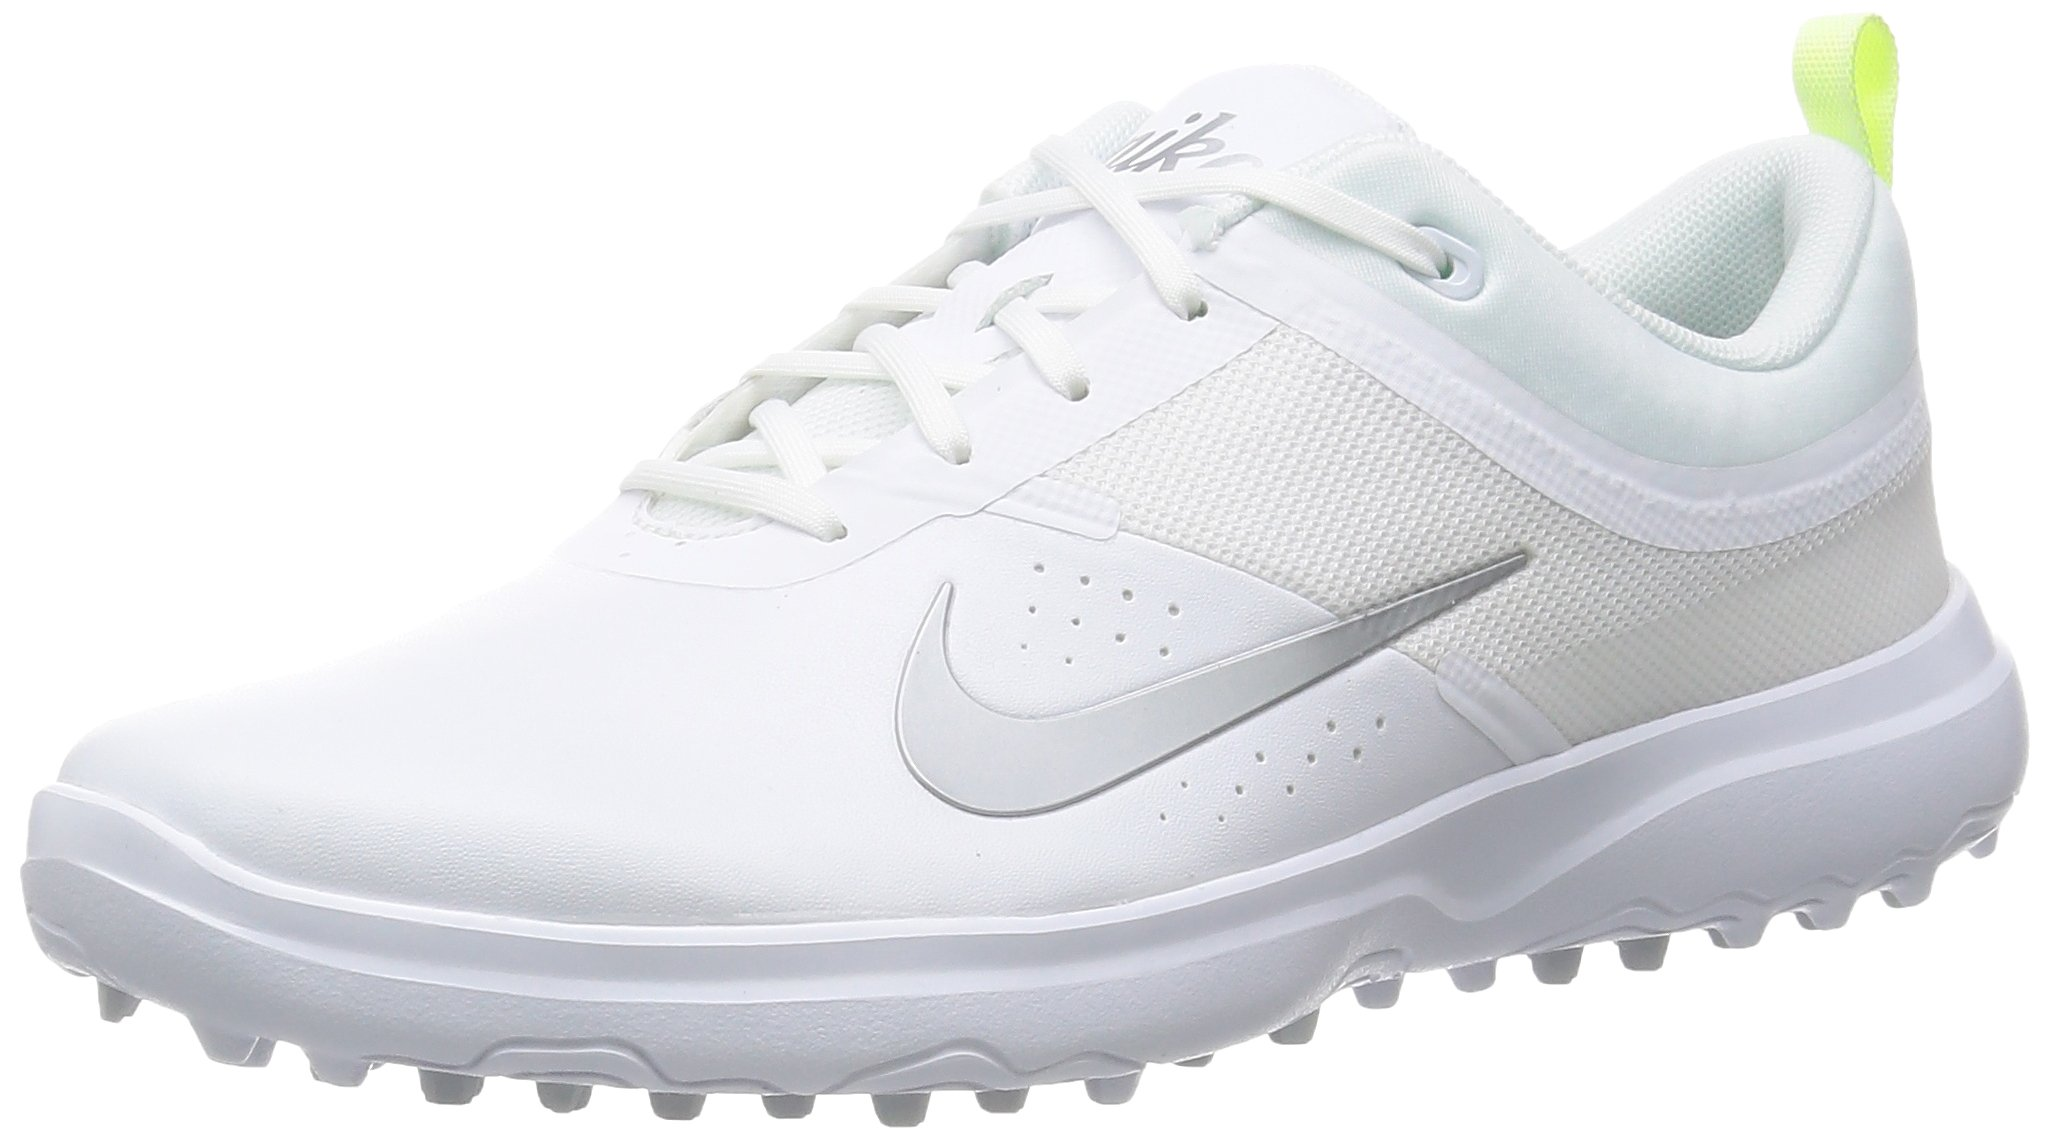 Nike AKAMAI Spikeless Golf Shoes 2017 Ladies(White/Silver, 7.0)